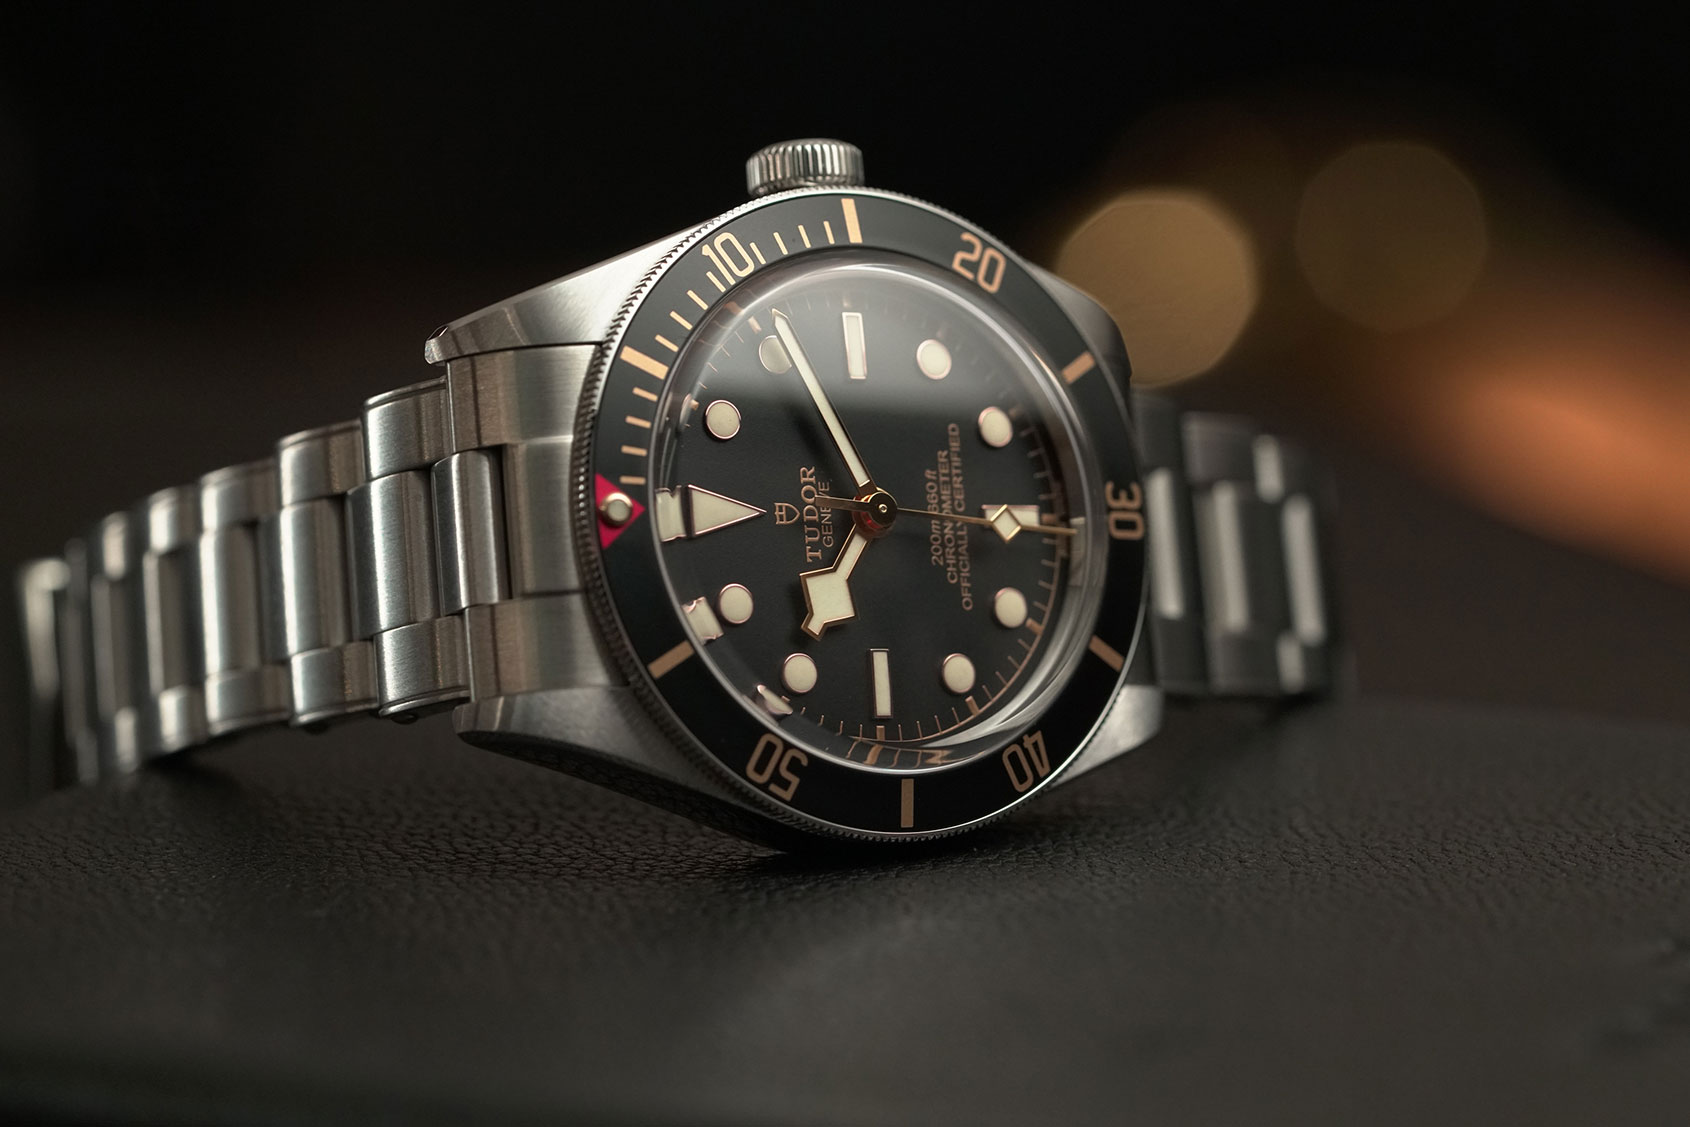 HANDS-ON: The Tudor Black Bay Fifty-Eight, with thinner, smaller case and brand-new movement